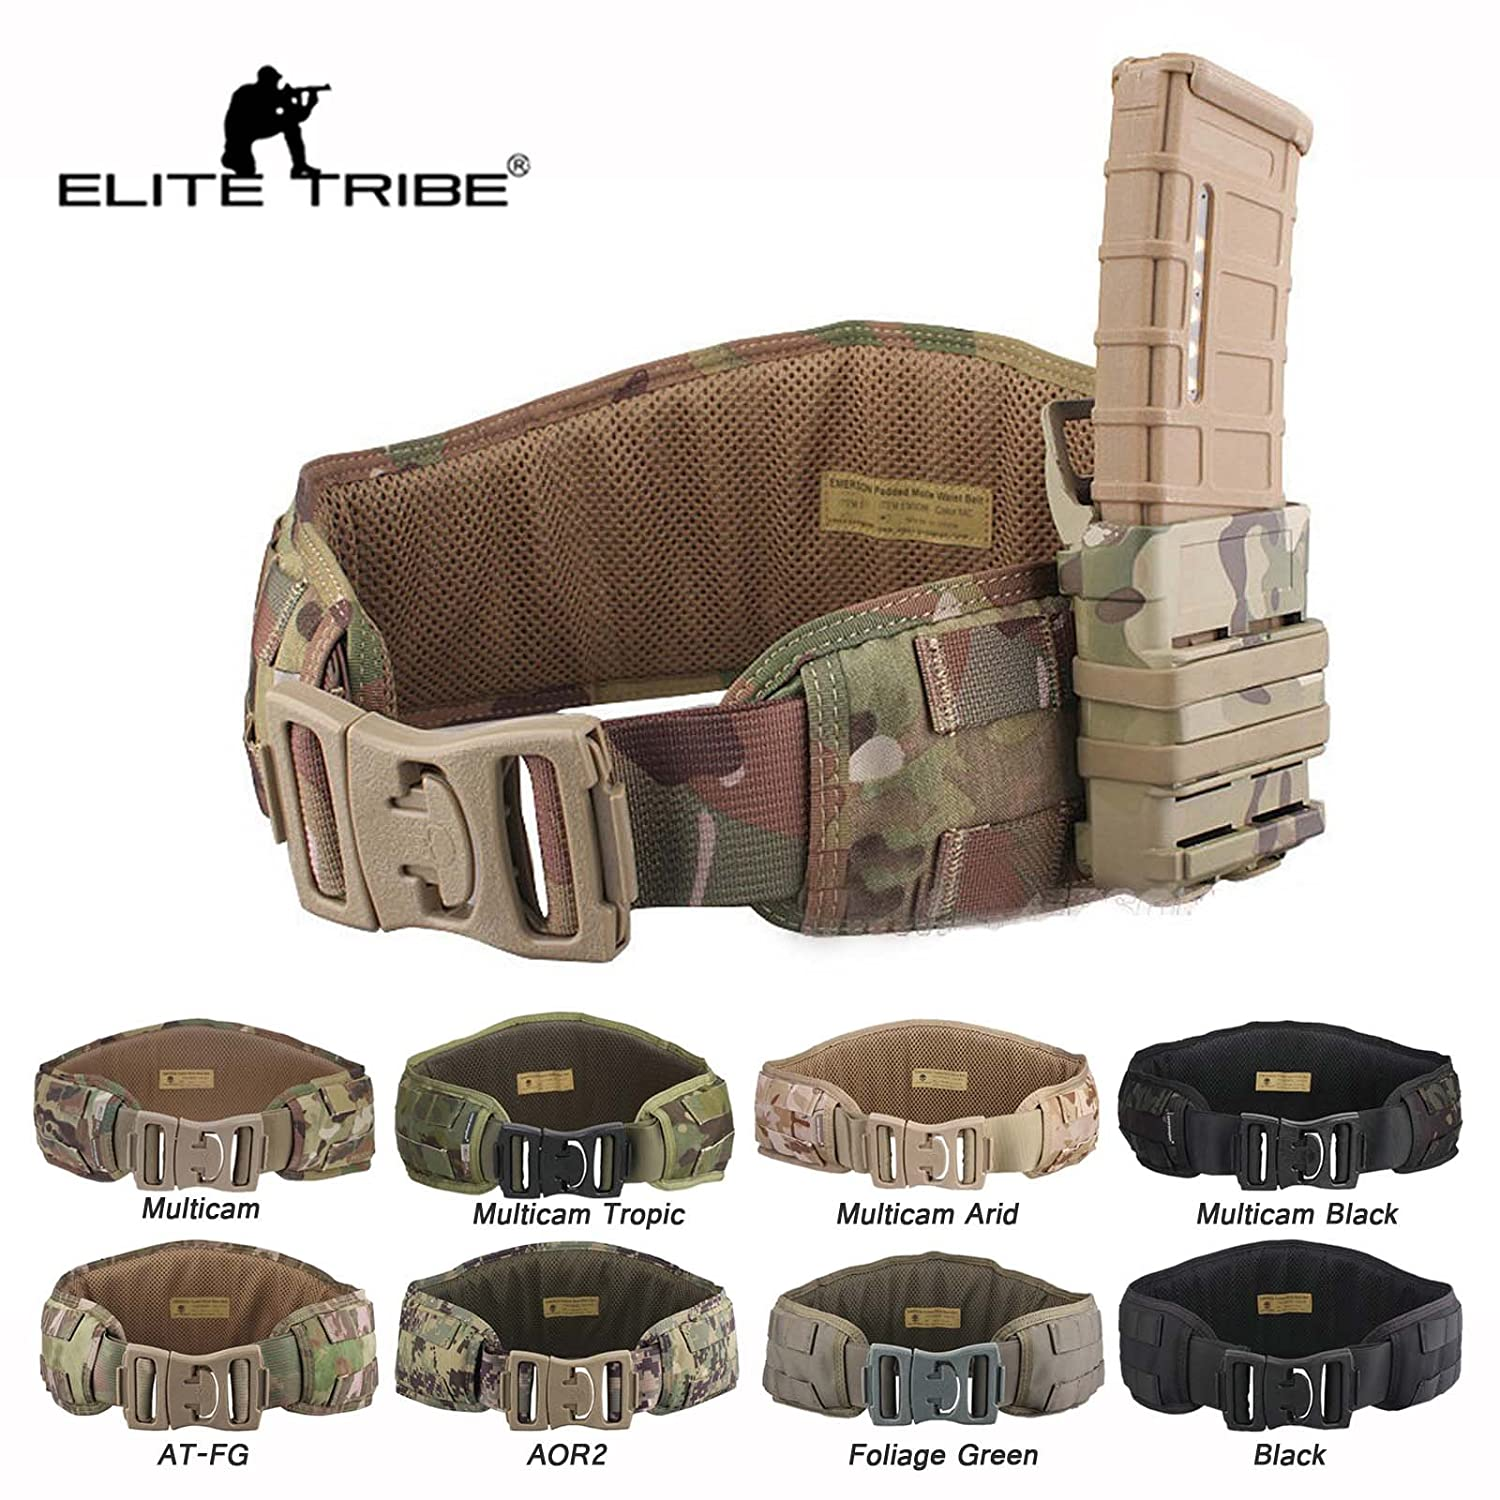 Airsoft Hunting Tactical Padded Belt Molle Combat Waist Belt (Black) Tactical Outdoor